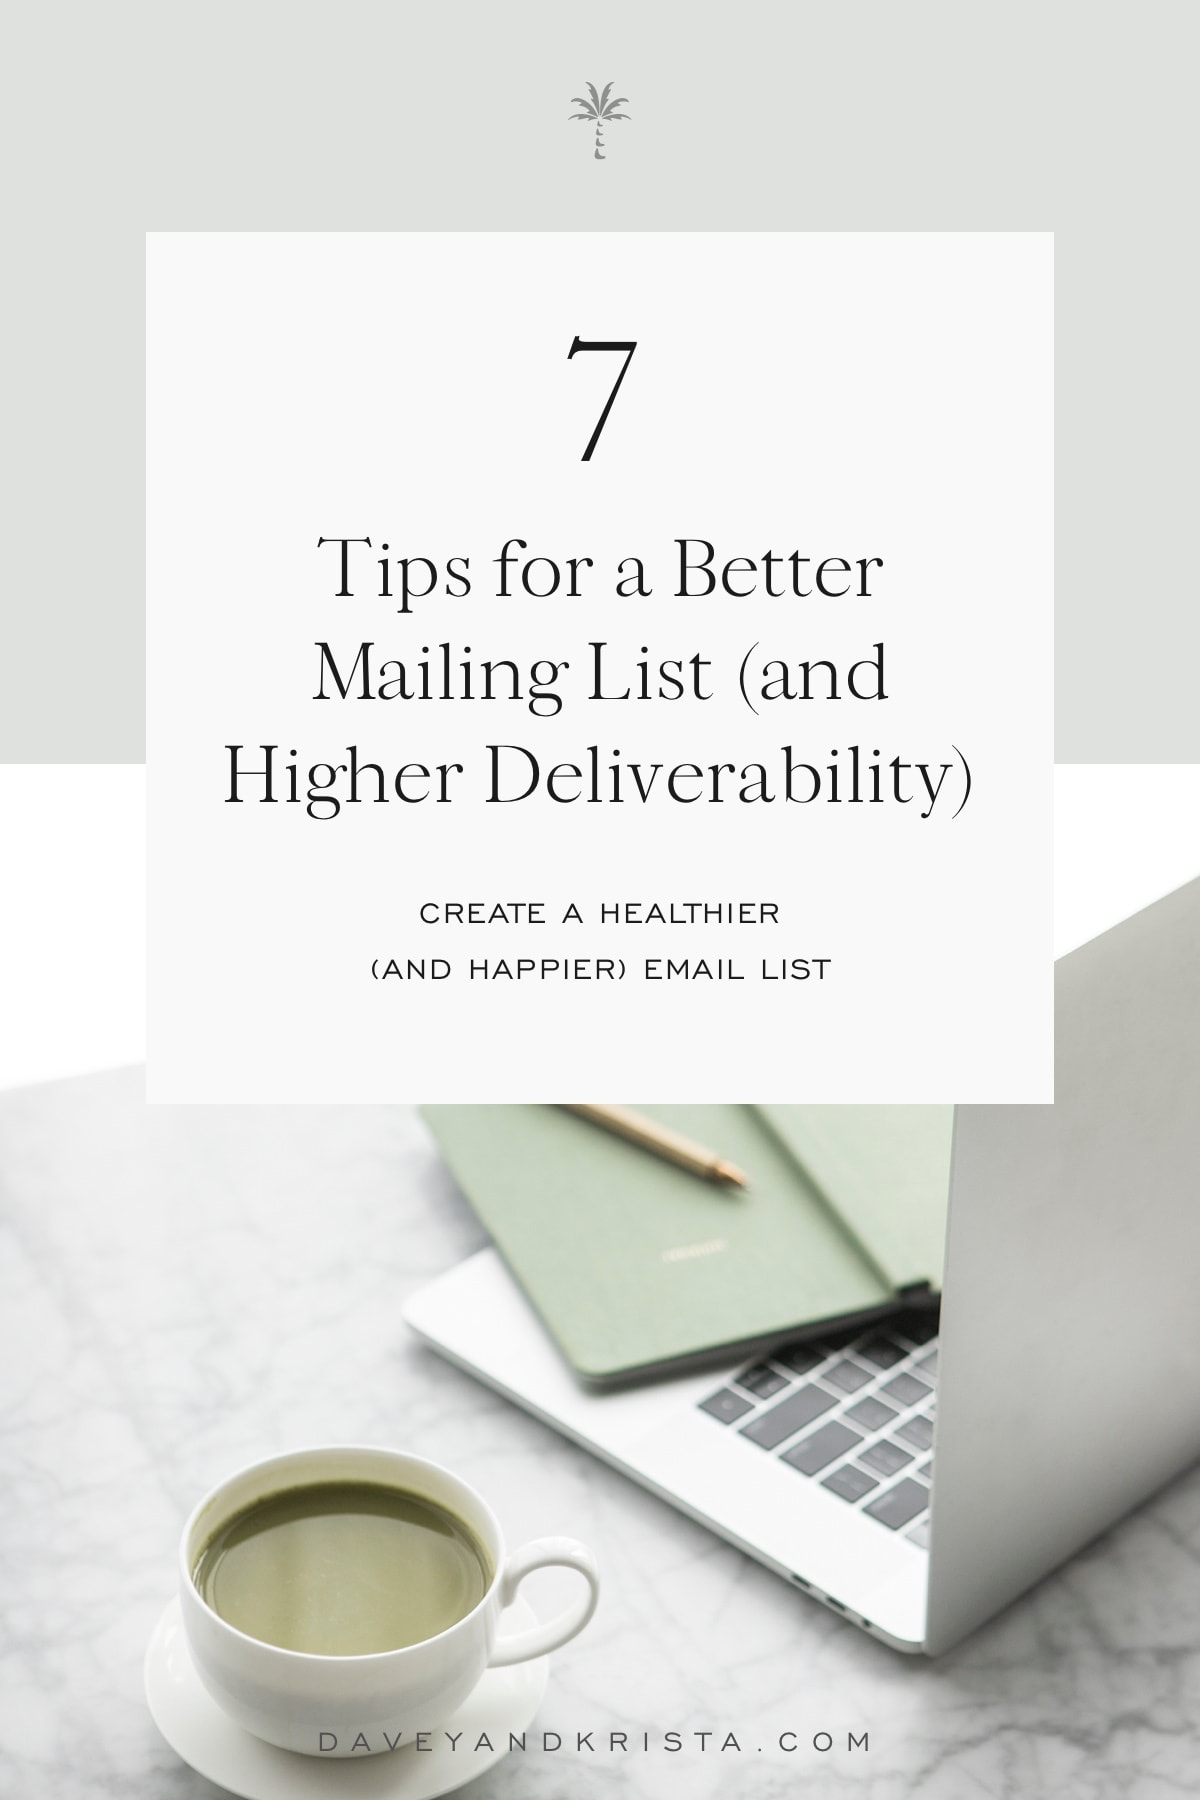 7 Tips for a Better Mailing List (and Higher Deliverability) | Davey & Krista